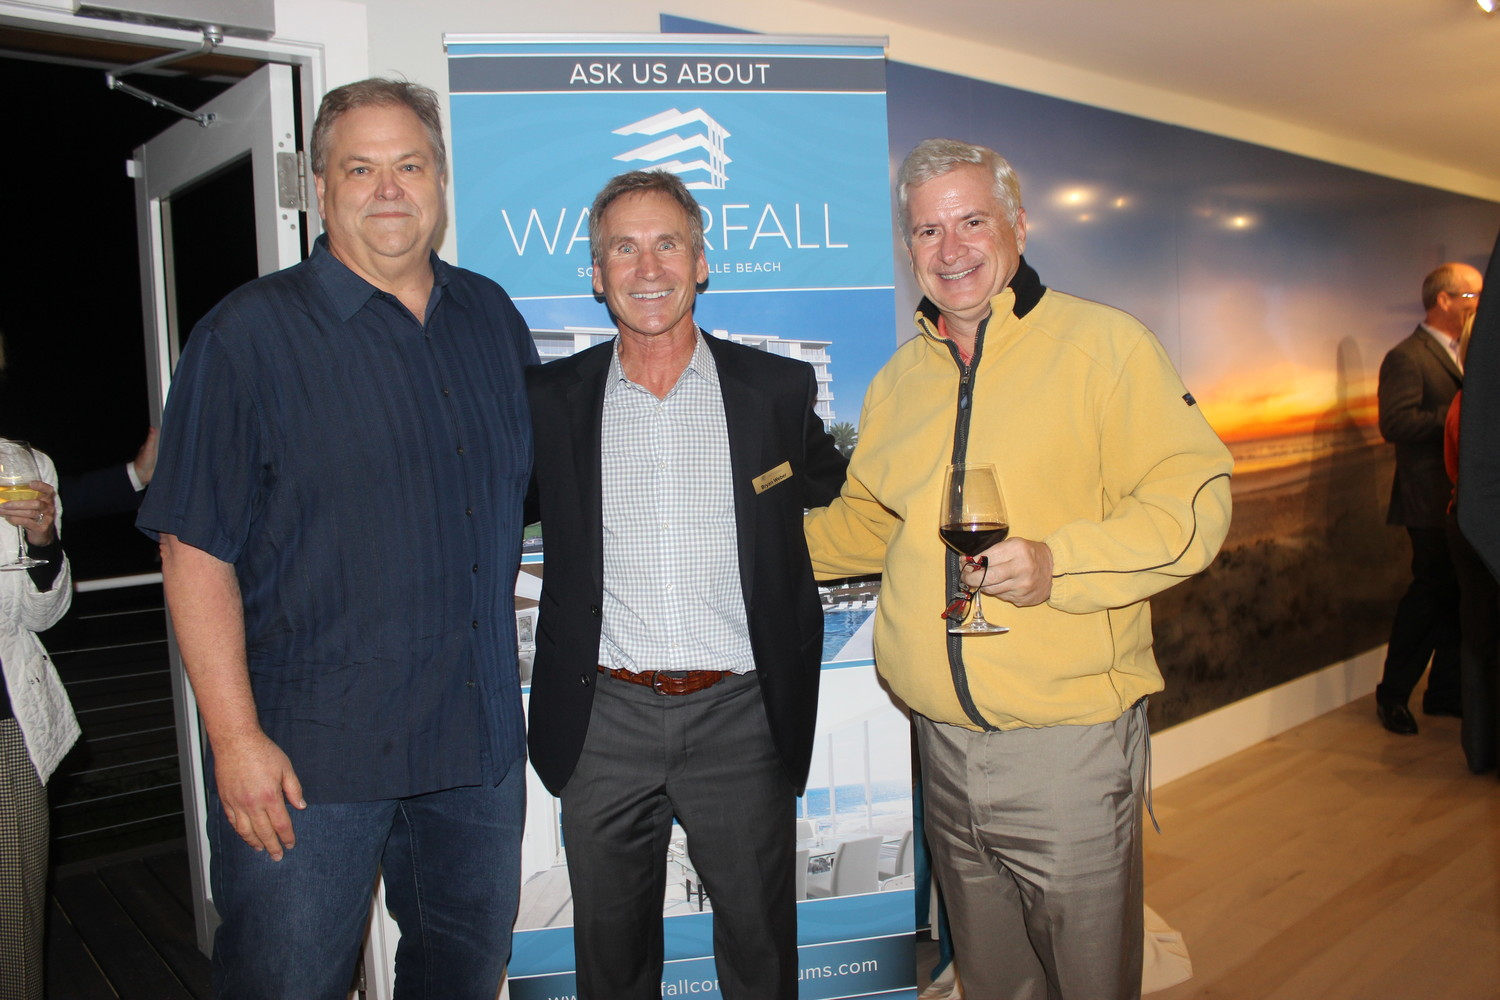 Tim Deck, Bryan Weber and David Fitzgerald gather at a special event hosted by Waterfall Condominiums in Jacksonville Beach on Nov. 15.